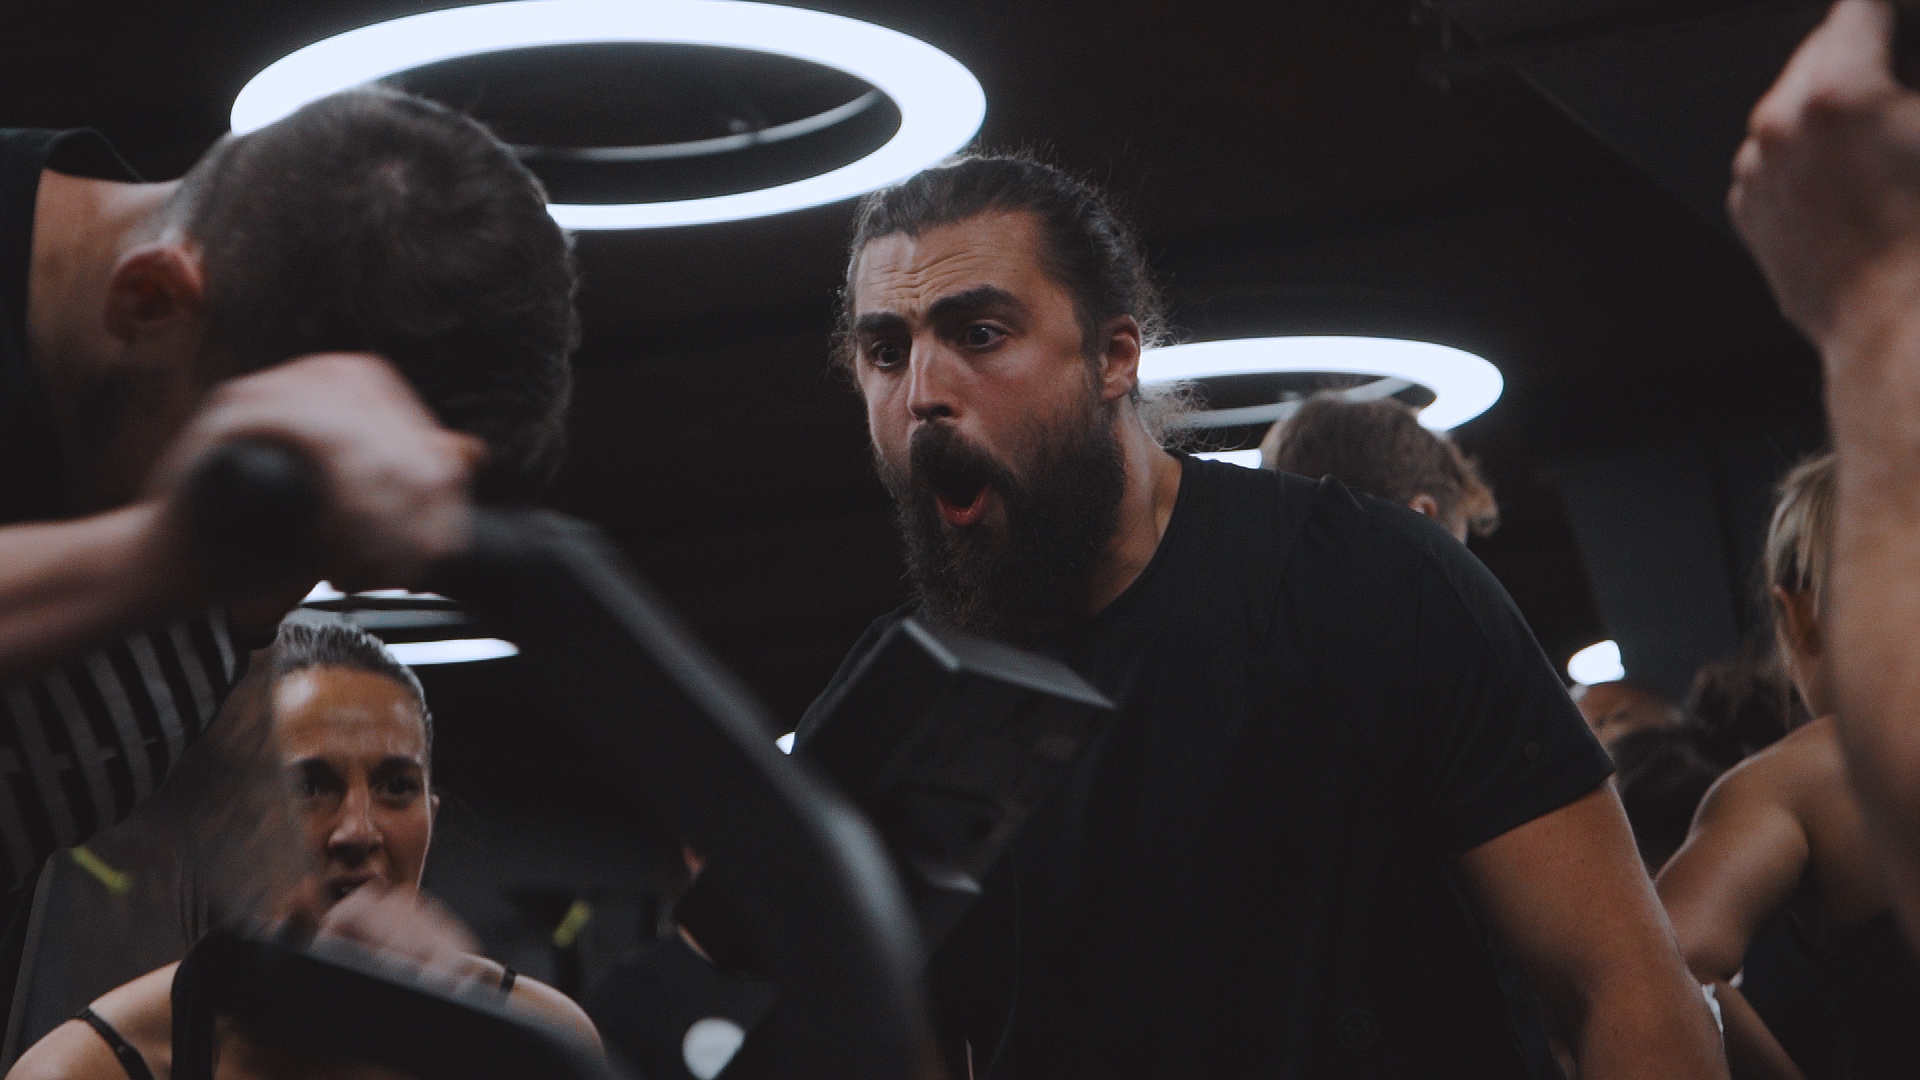 cavefit winter games event video production jason mamoa lookalike